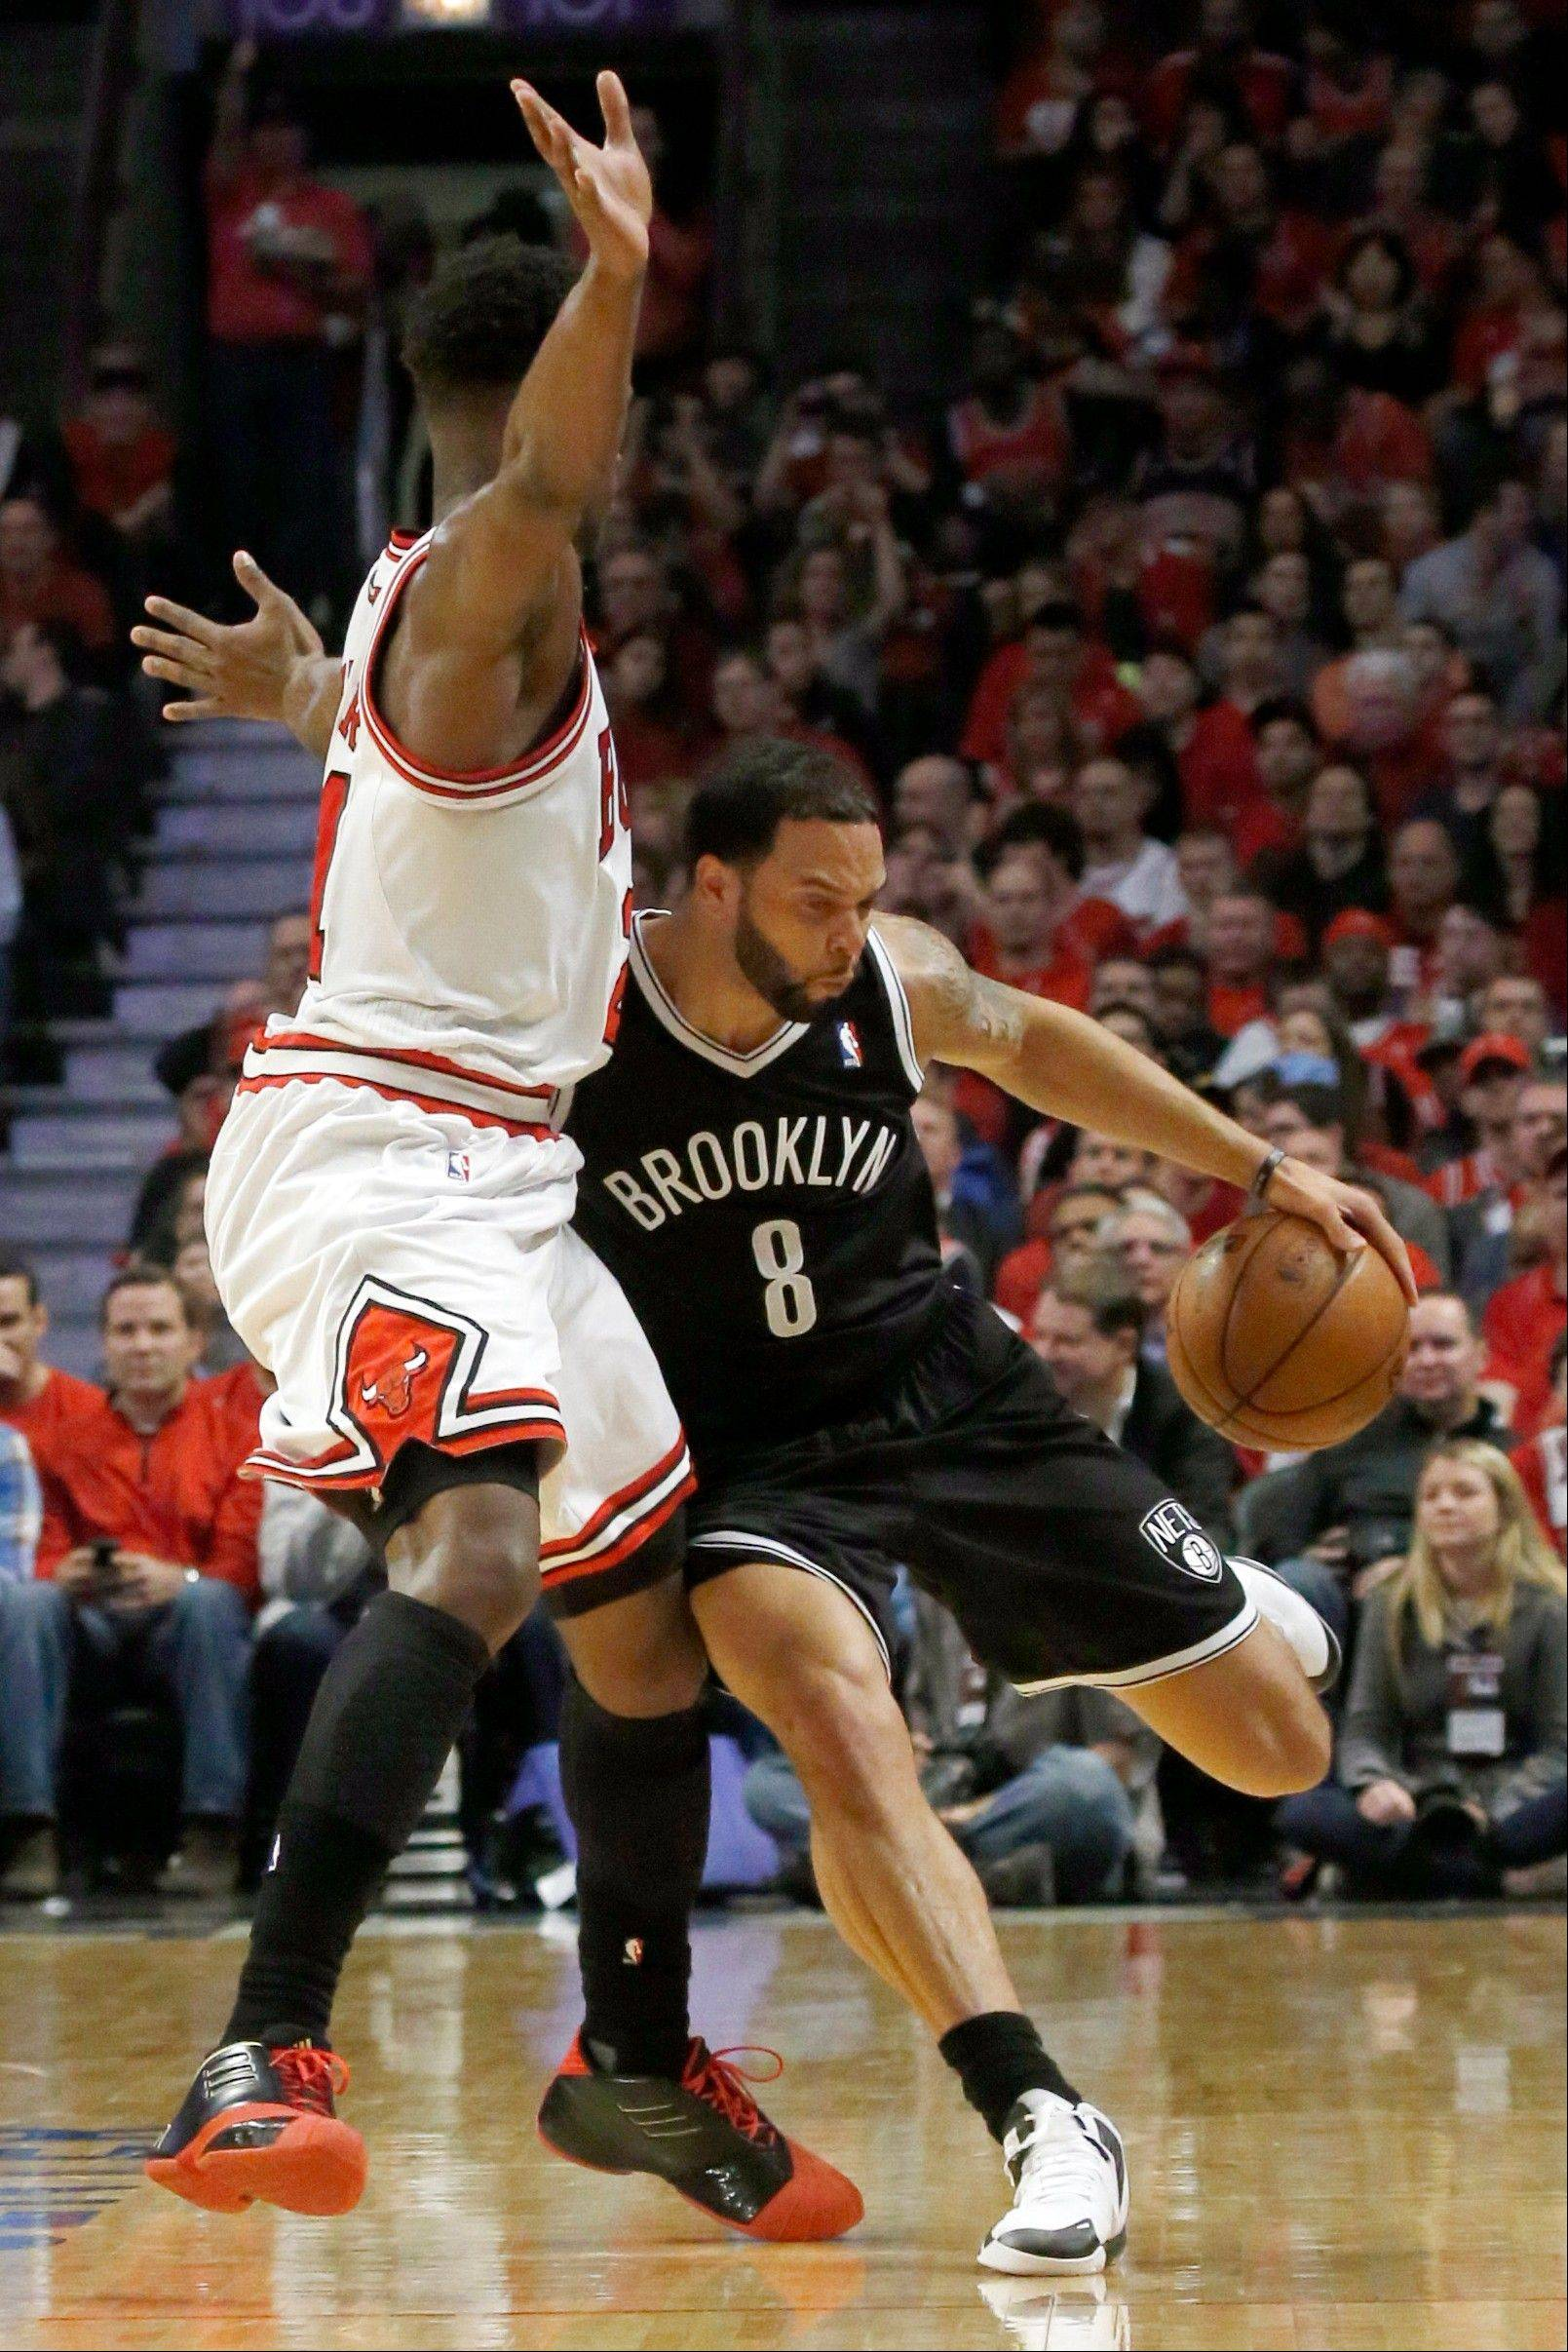 Brooklyn Nets point guard Deron Williams (8) is pressured by Chicago Bulls small forward Jimmy Butler Thursday night at the United Center.